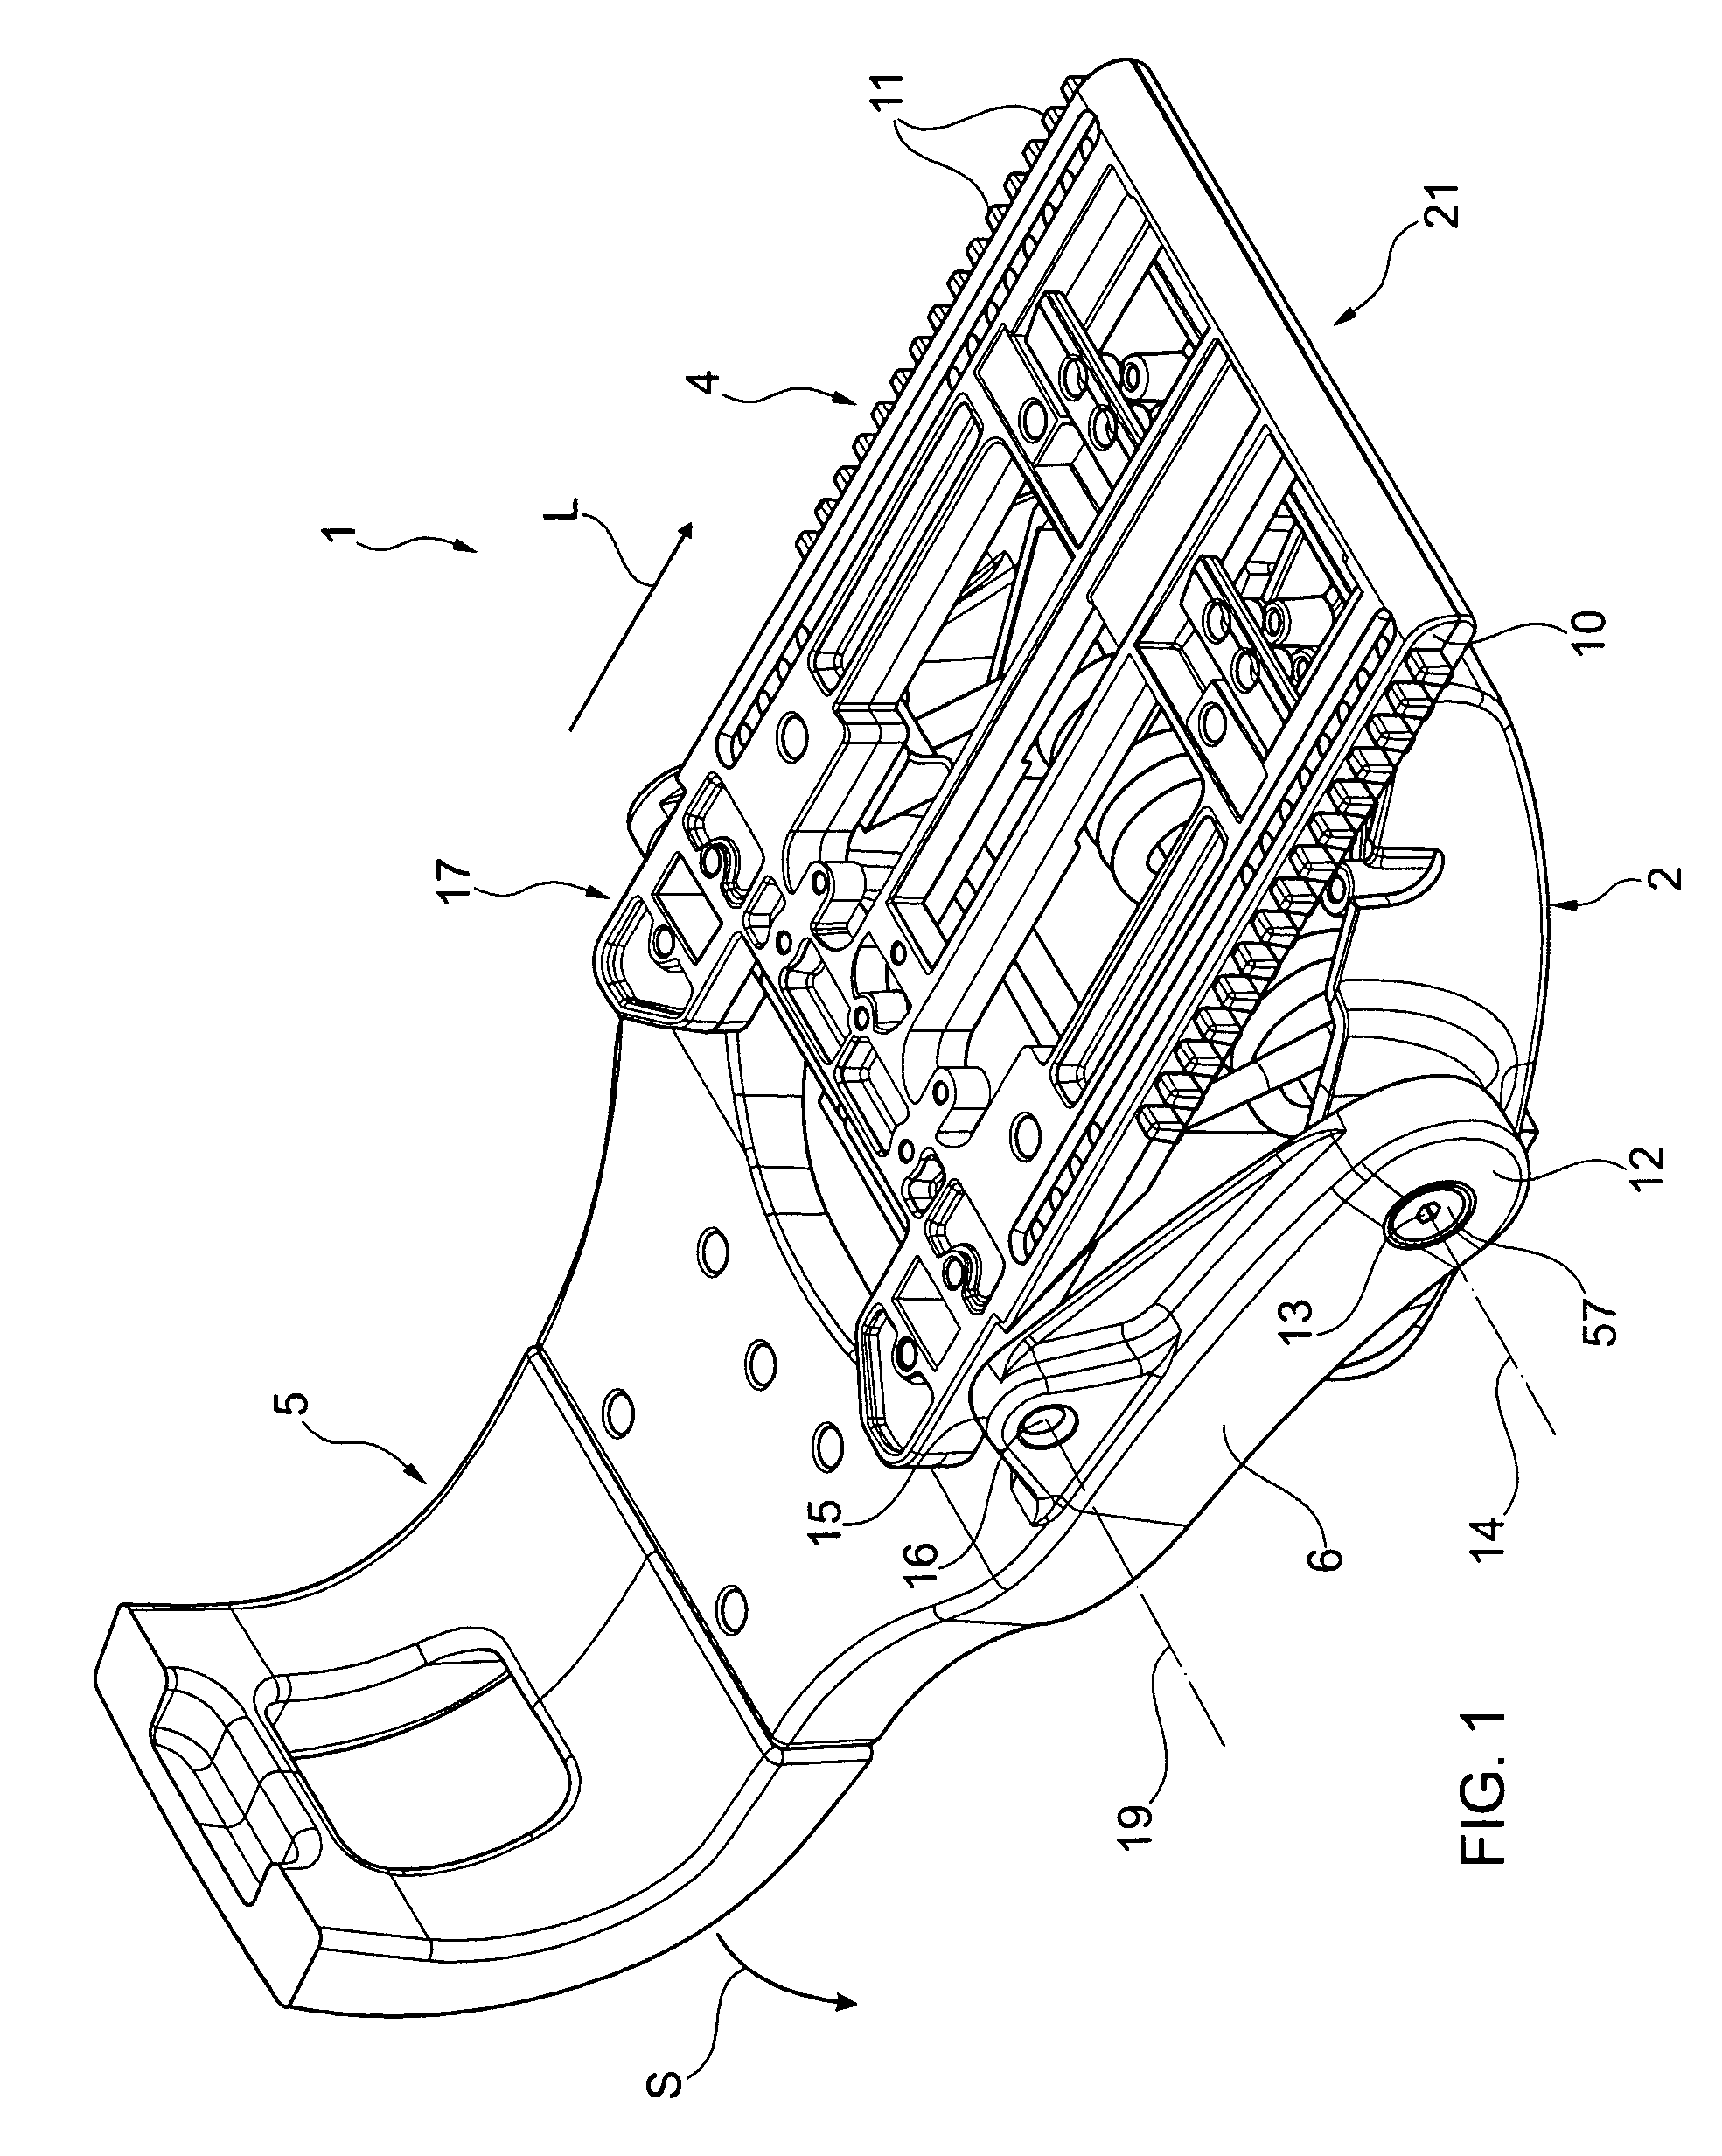 Patent Us8146990 Mechanism For An Office Chair Google Patents Diagram Of A 1980 Honda Goldwing Wiring Drawing